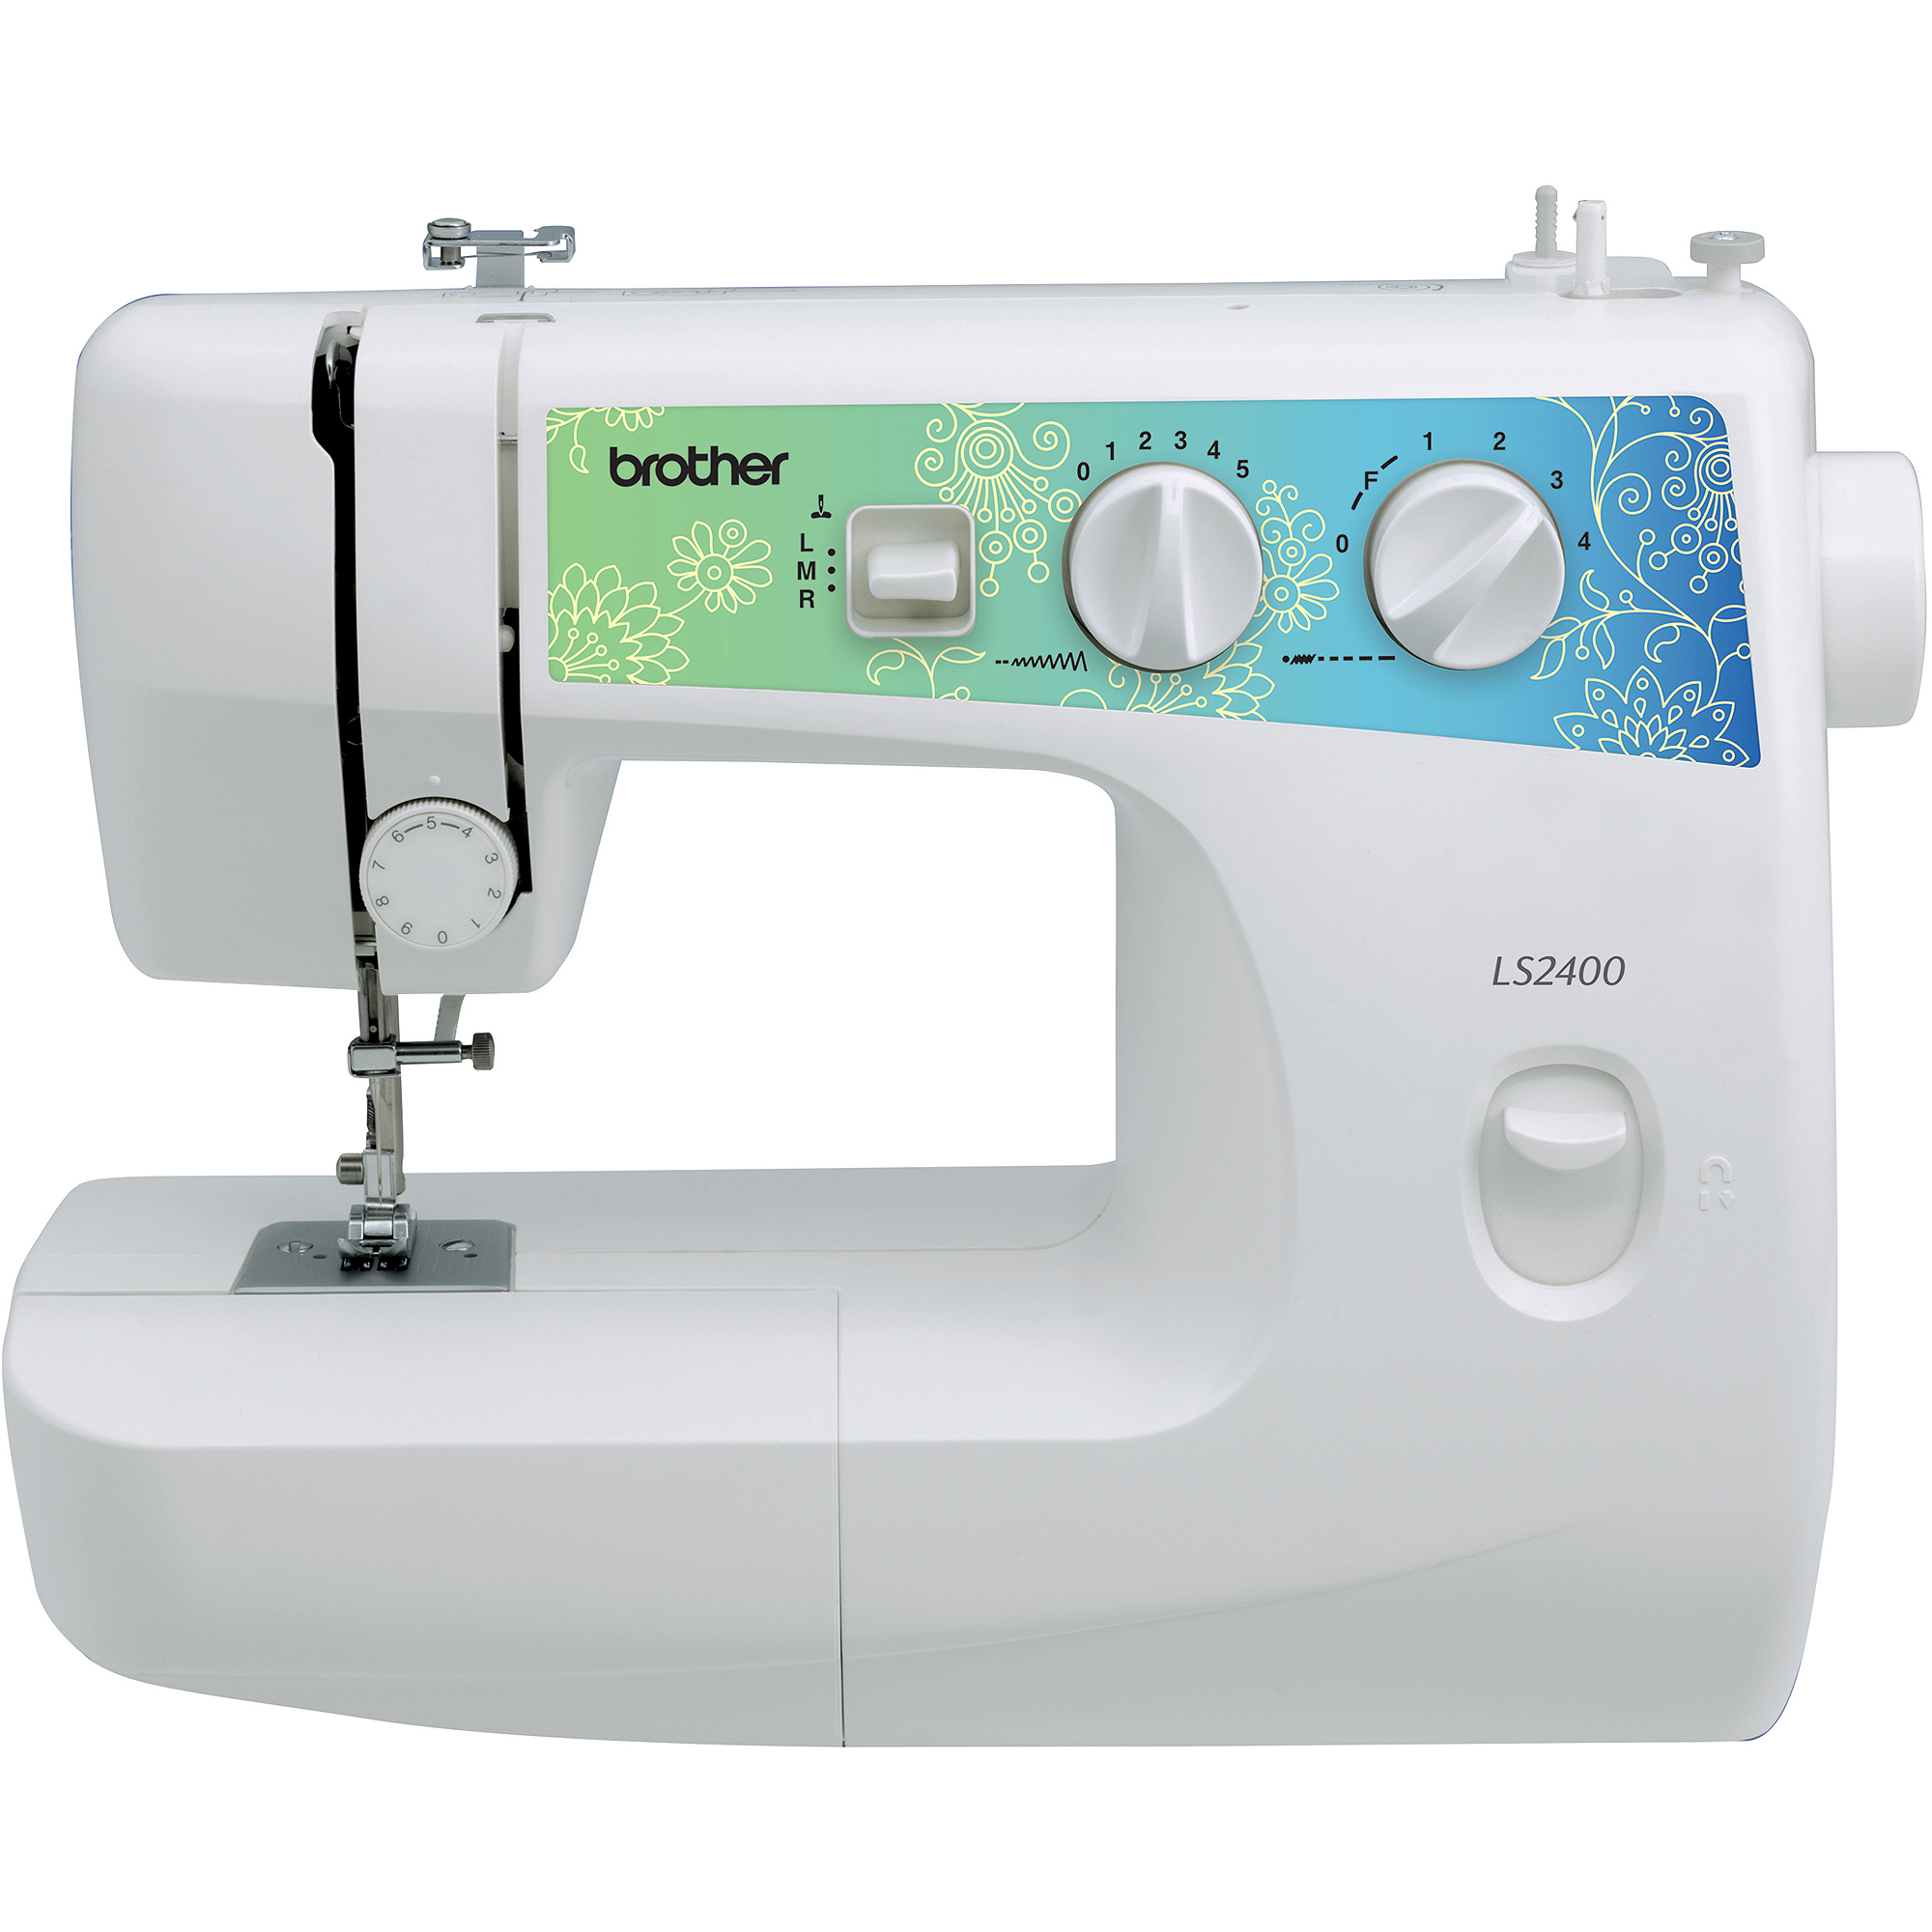 Brother 20-Stitch Function, 2-Stitch Sewing Machine, LS2400